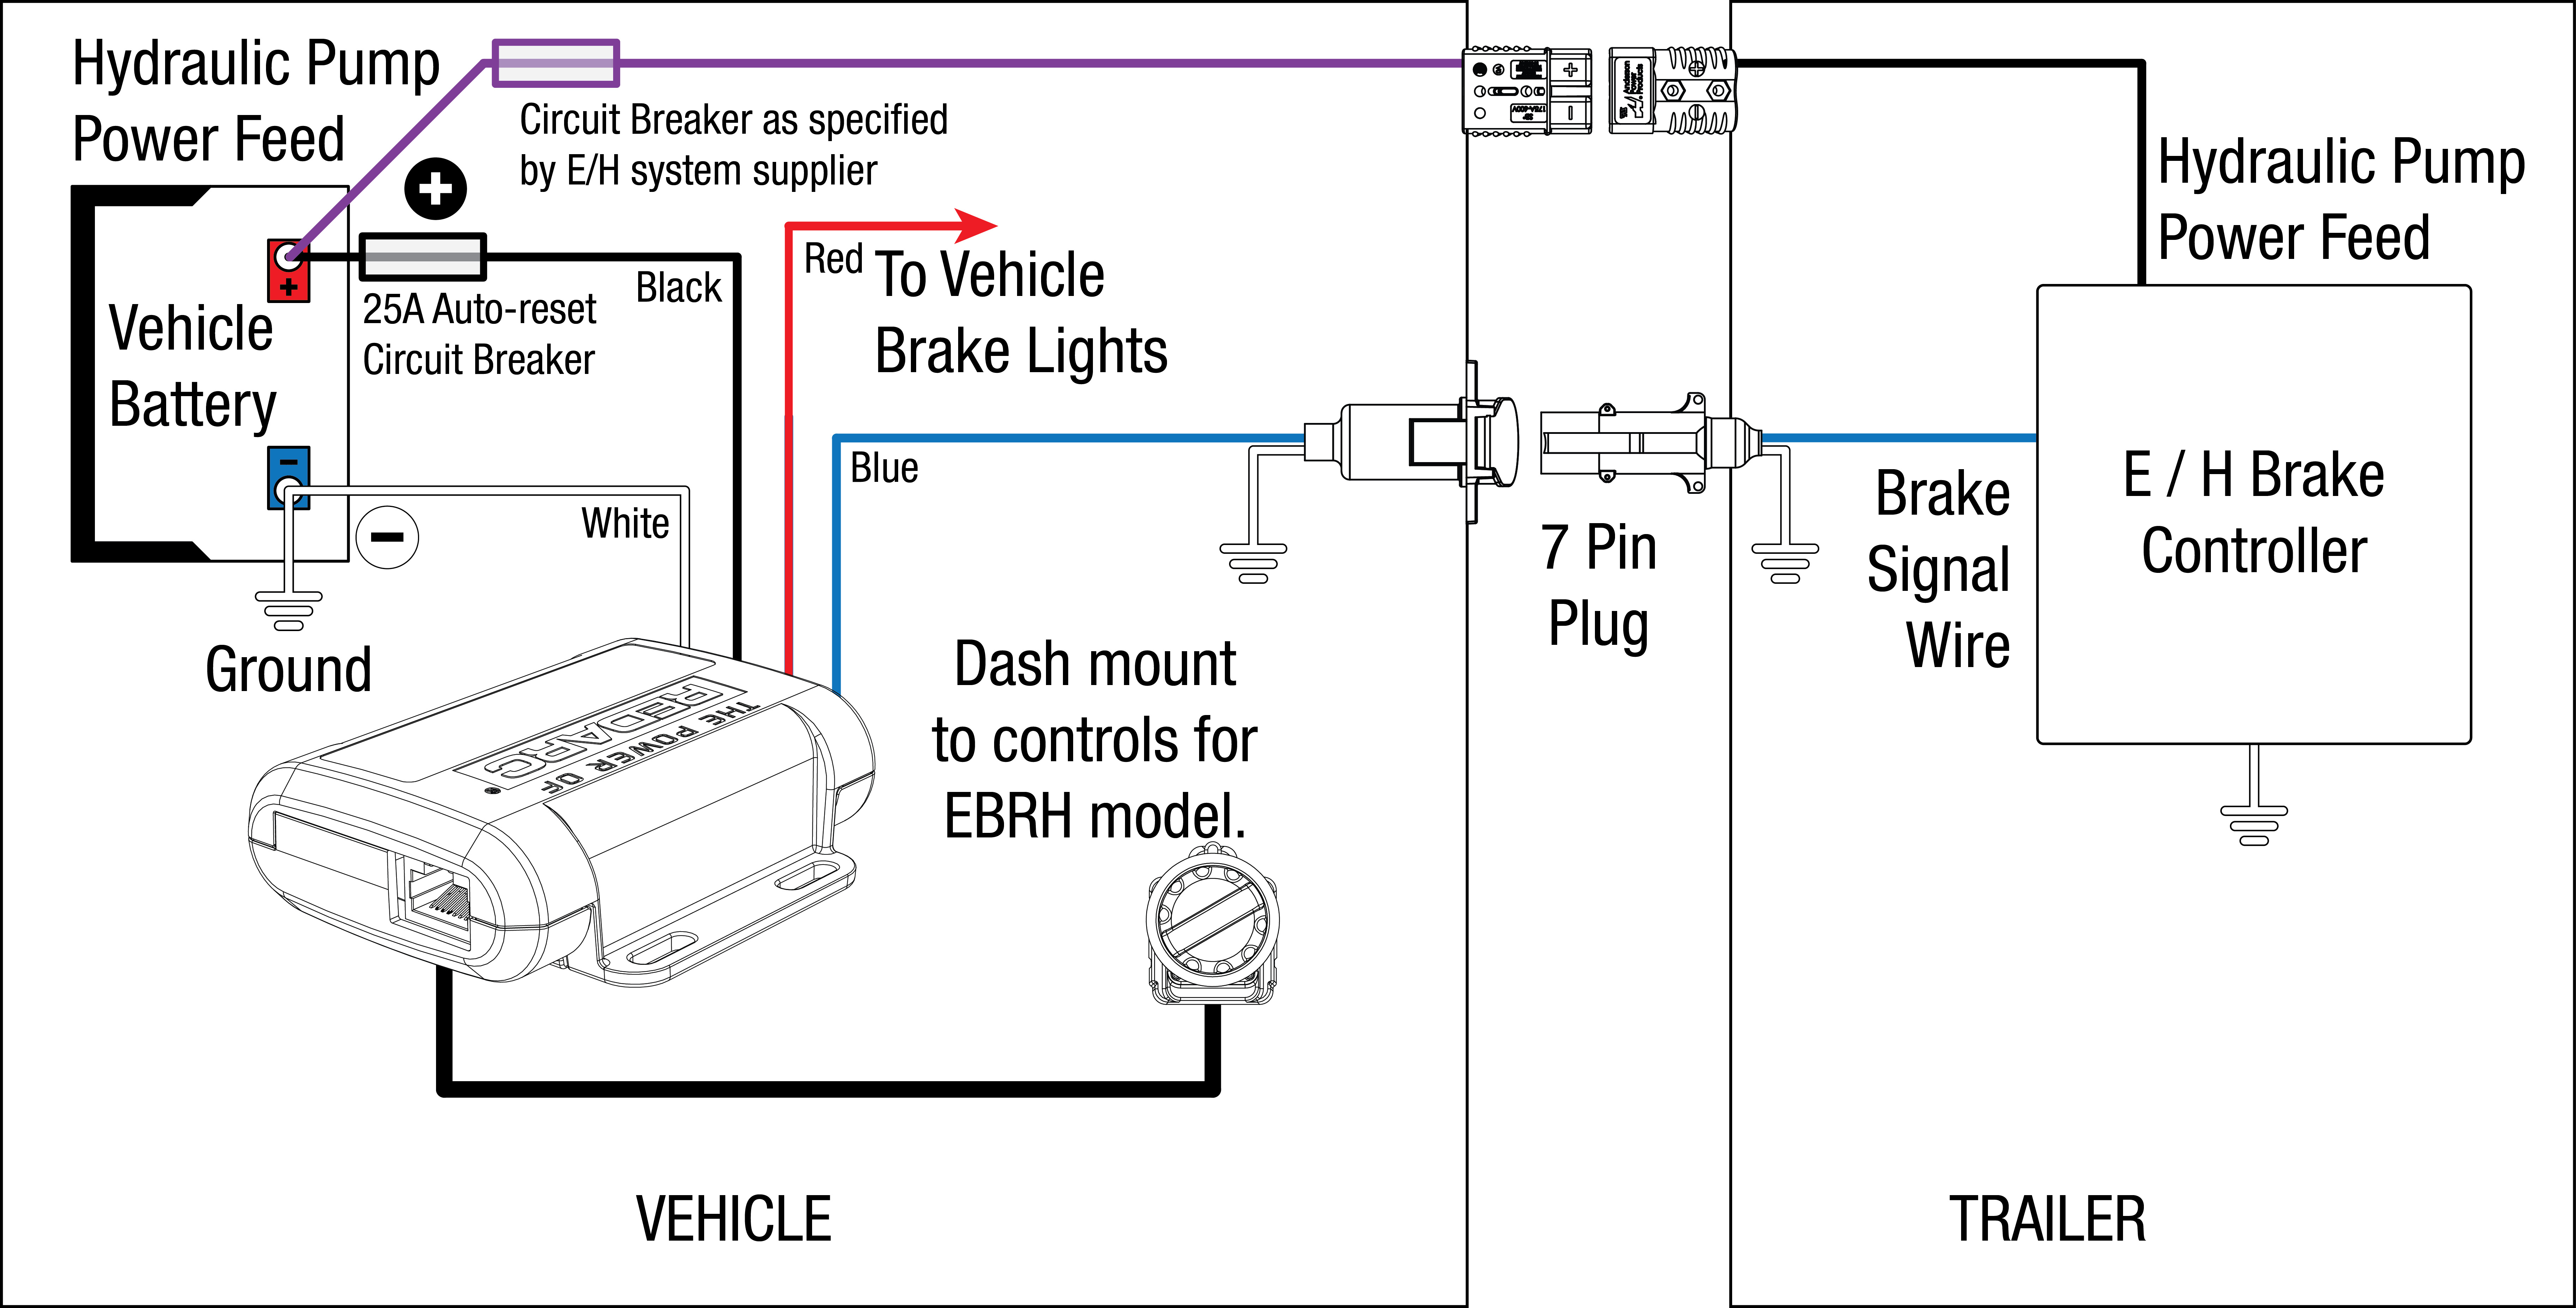 Tow-Pro Electric/hydraulic Braking Systems | Redarc Electronics - Electric Trailer Brakes Wiring Diagram Australia